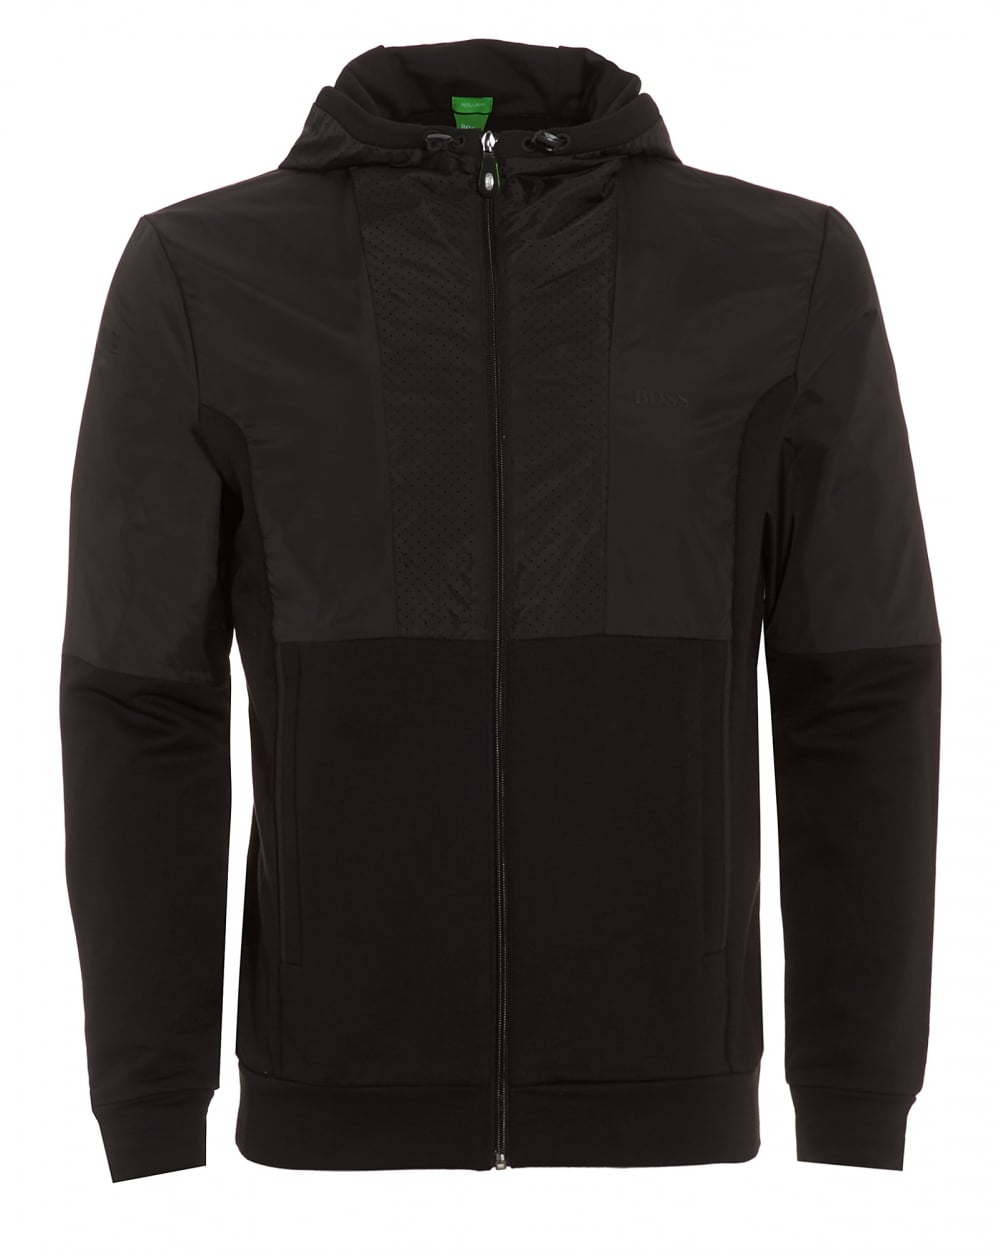 boys' hoodies Help him stay comfortable and warm in colder weather with Nike boys' hoodies. Available in a variety of styles such as zip up, pullover and fleece to match his life and his look.